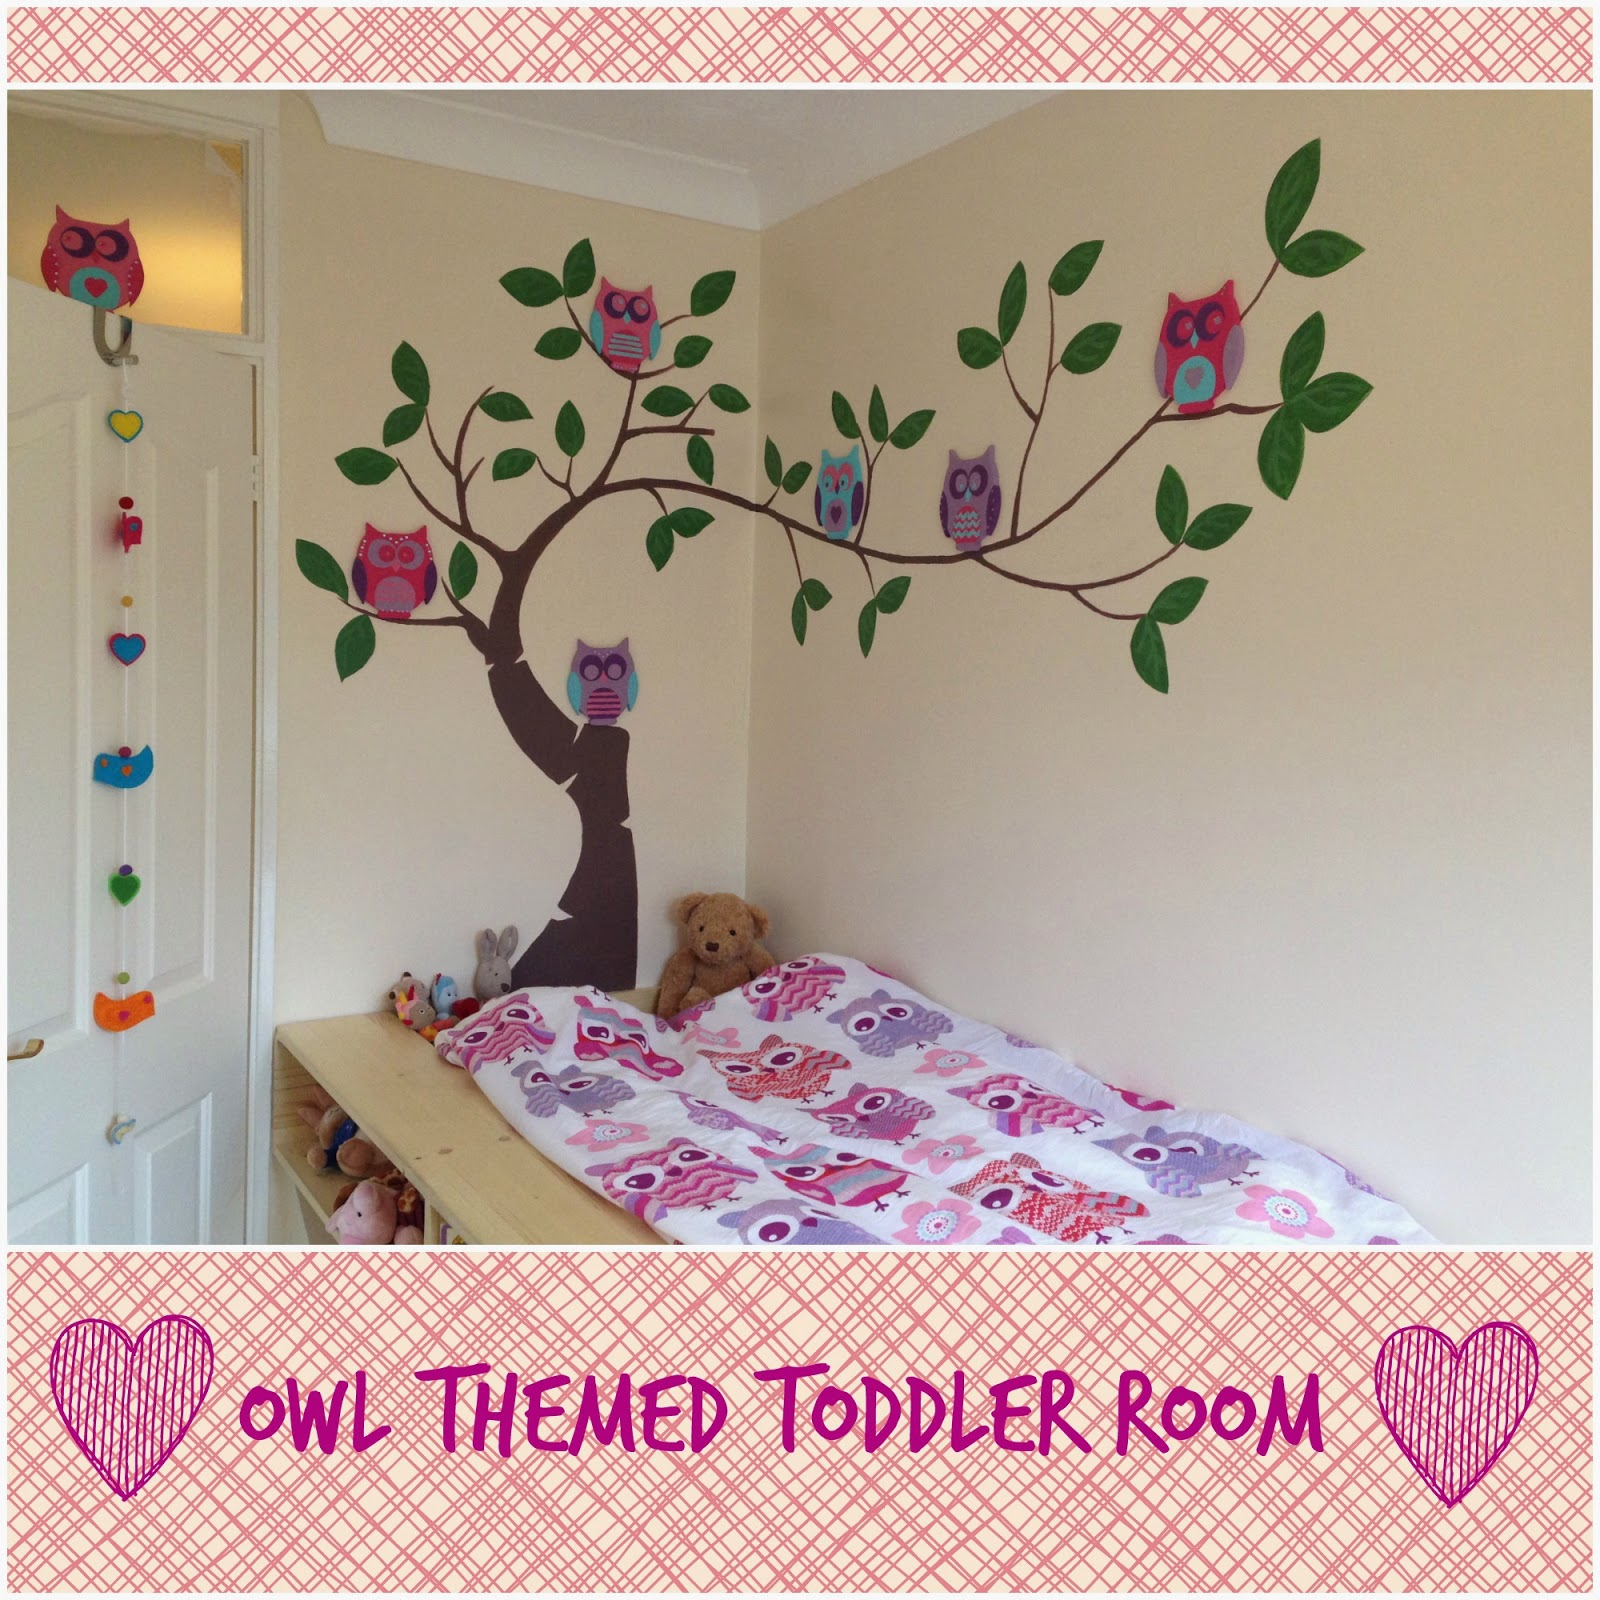 Tree with owls painted above a toddler bed